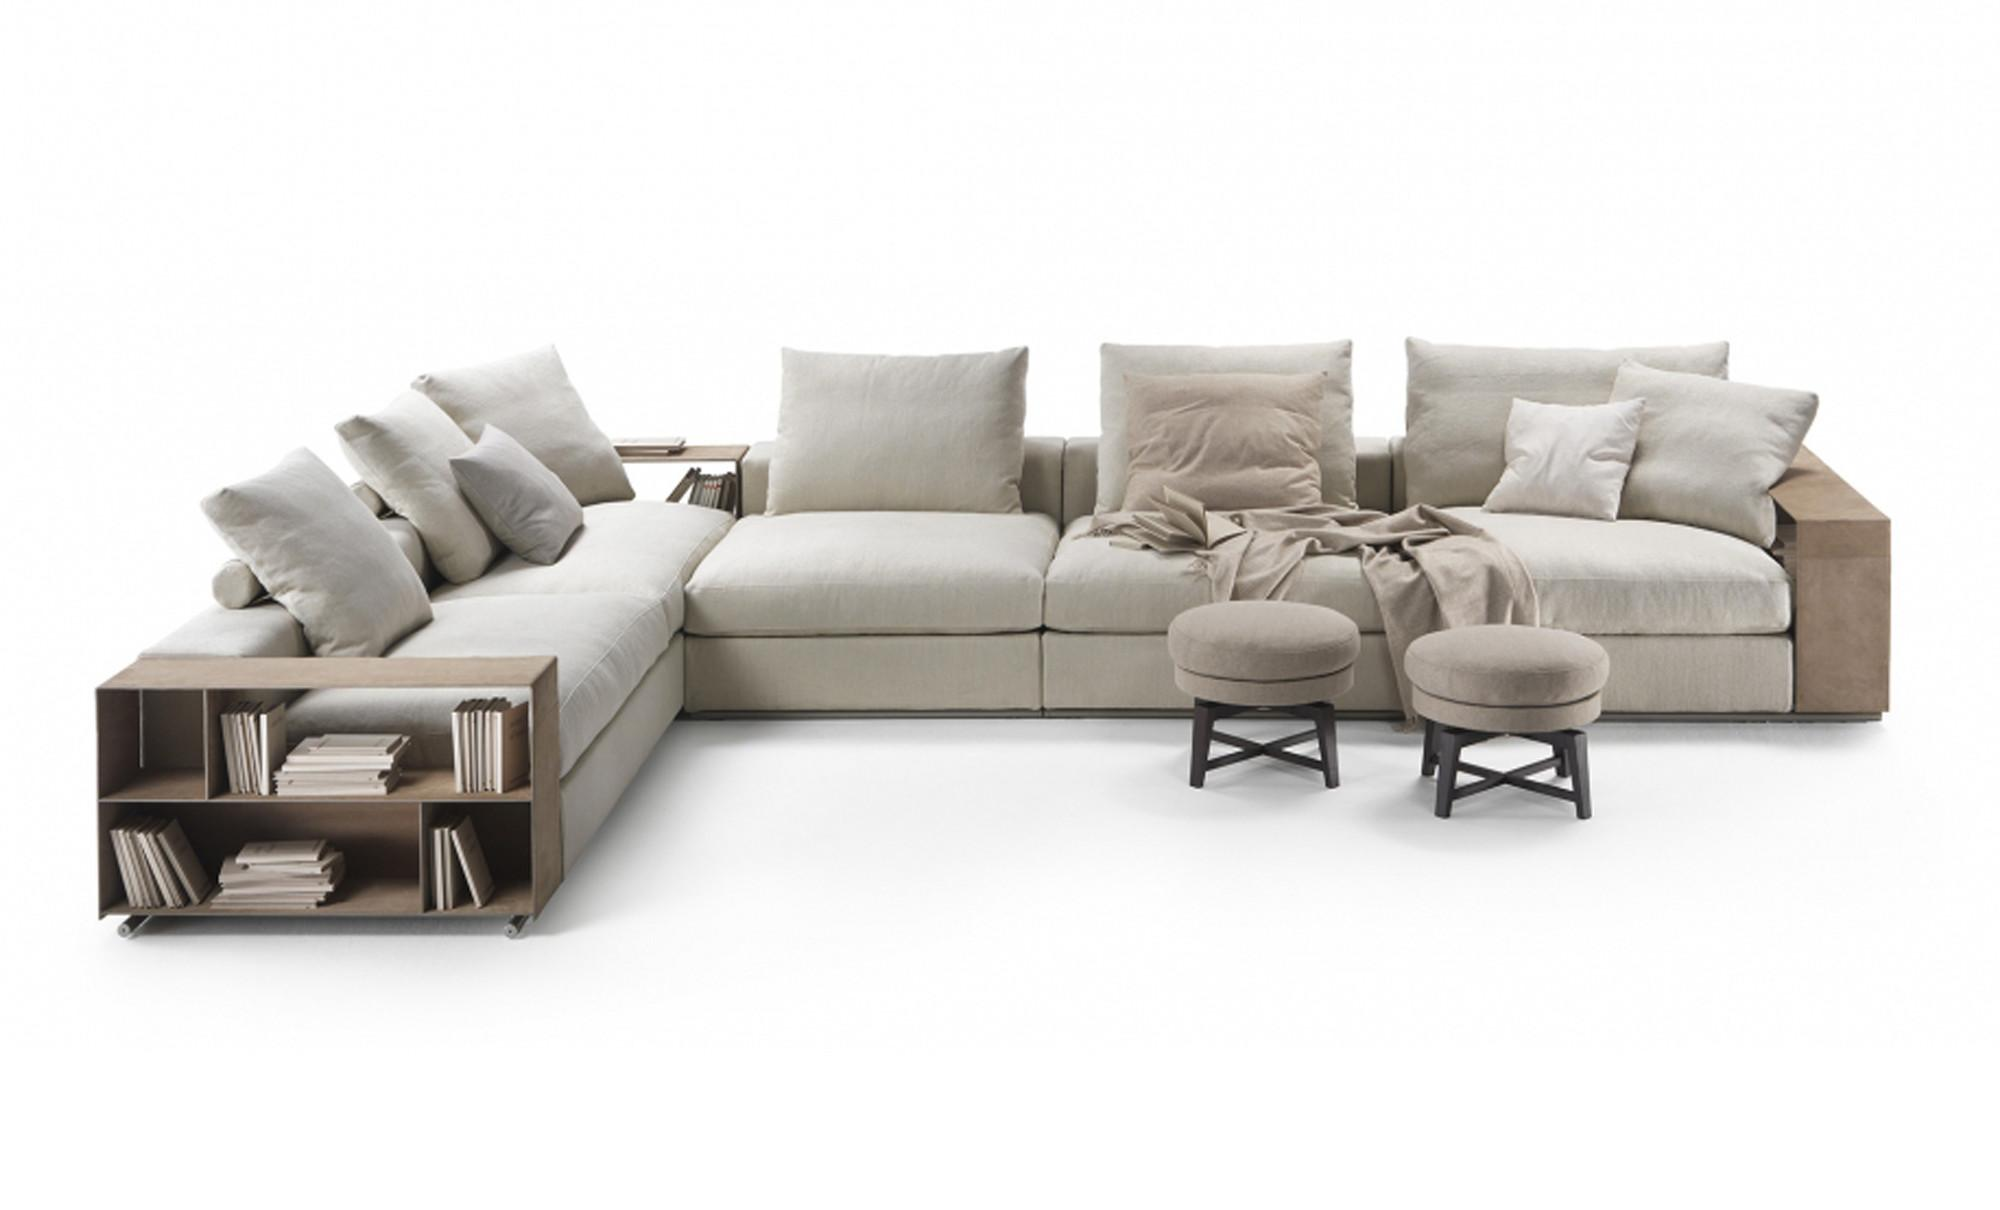 Groundpiece Sofas Fanuli Furniture